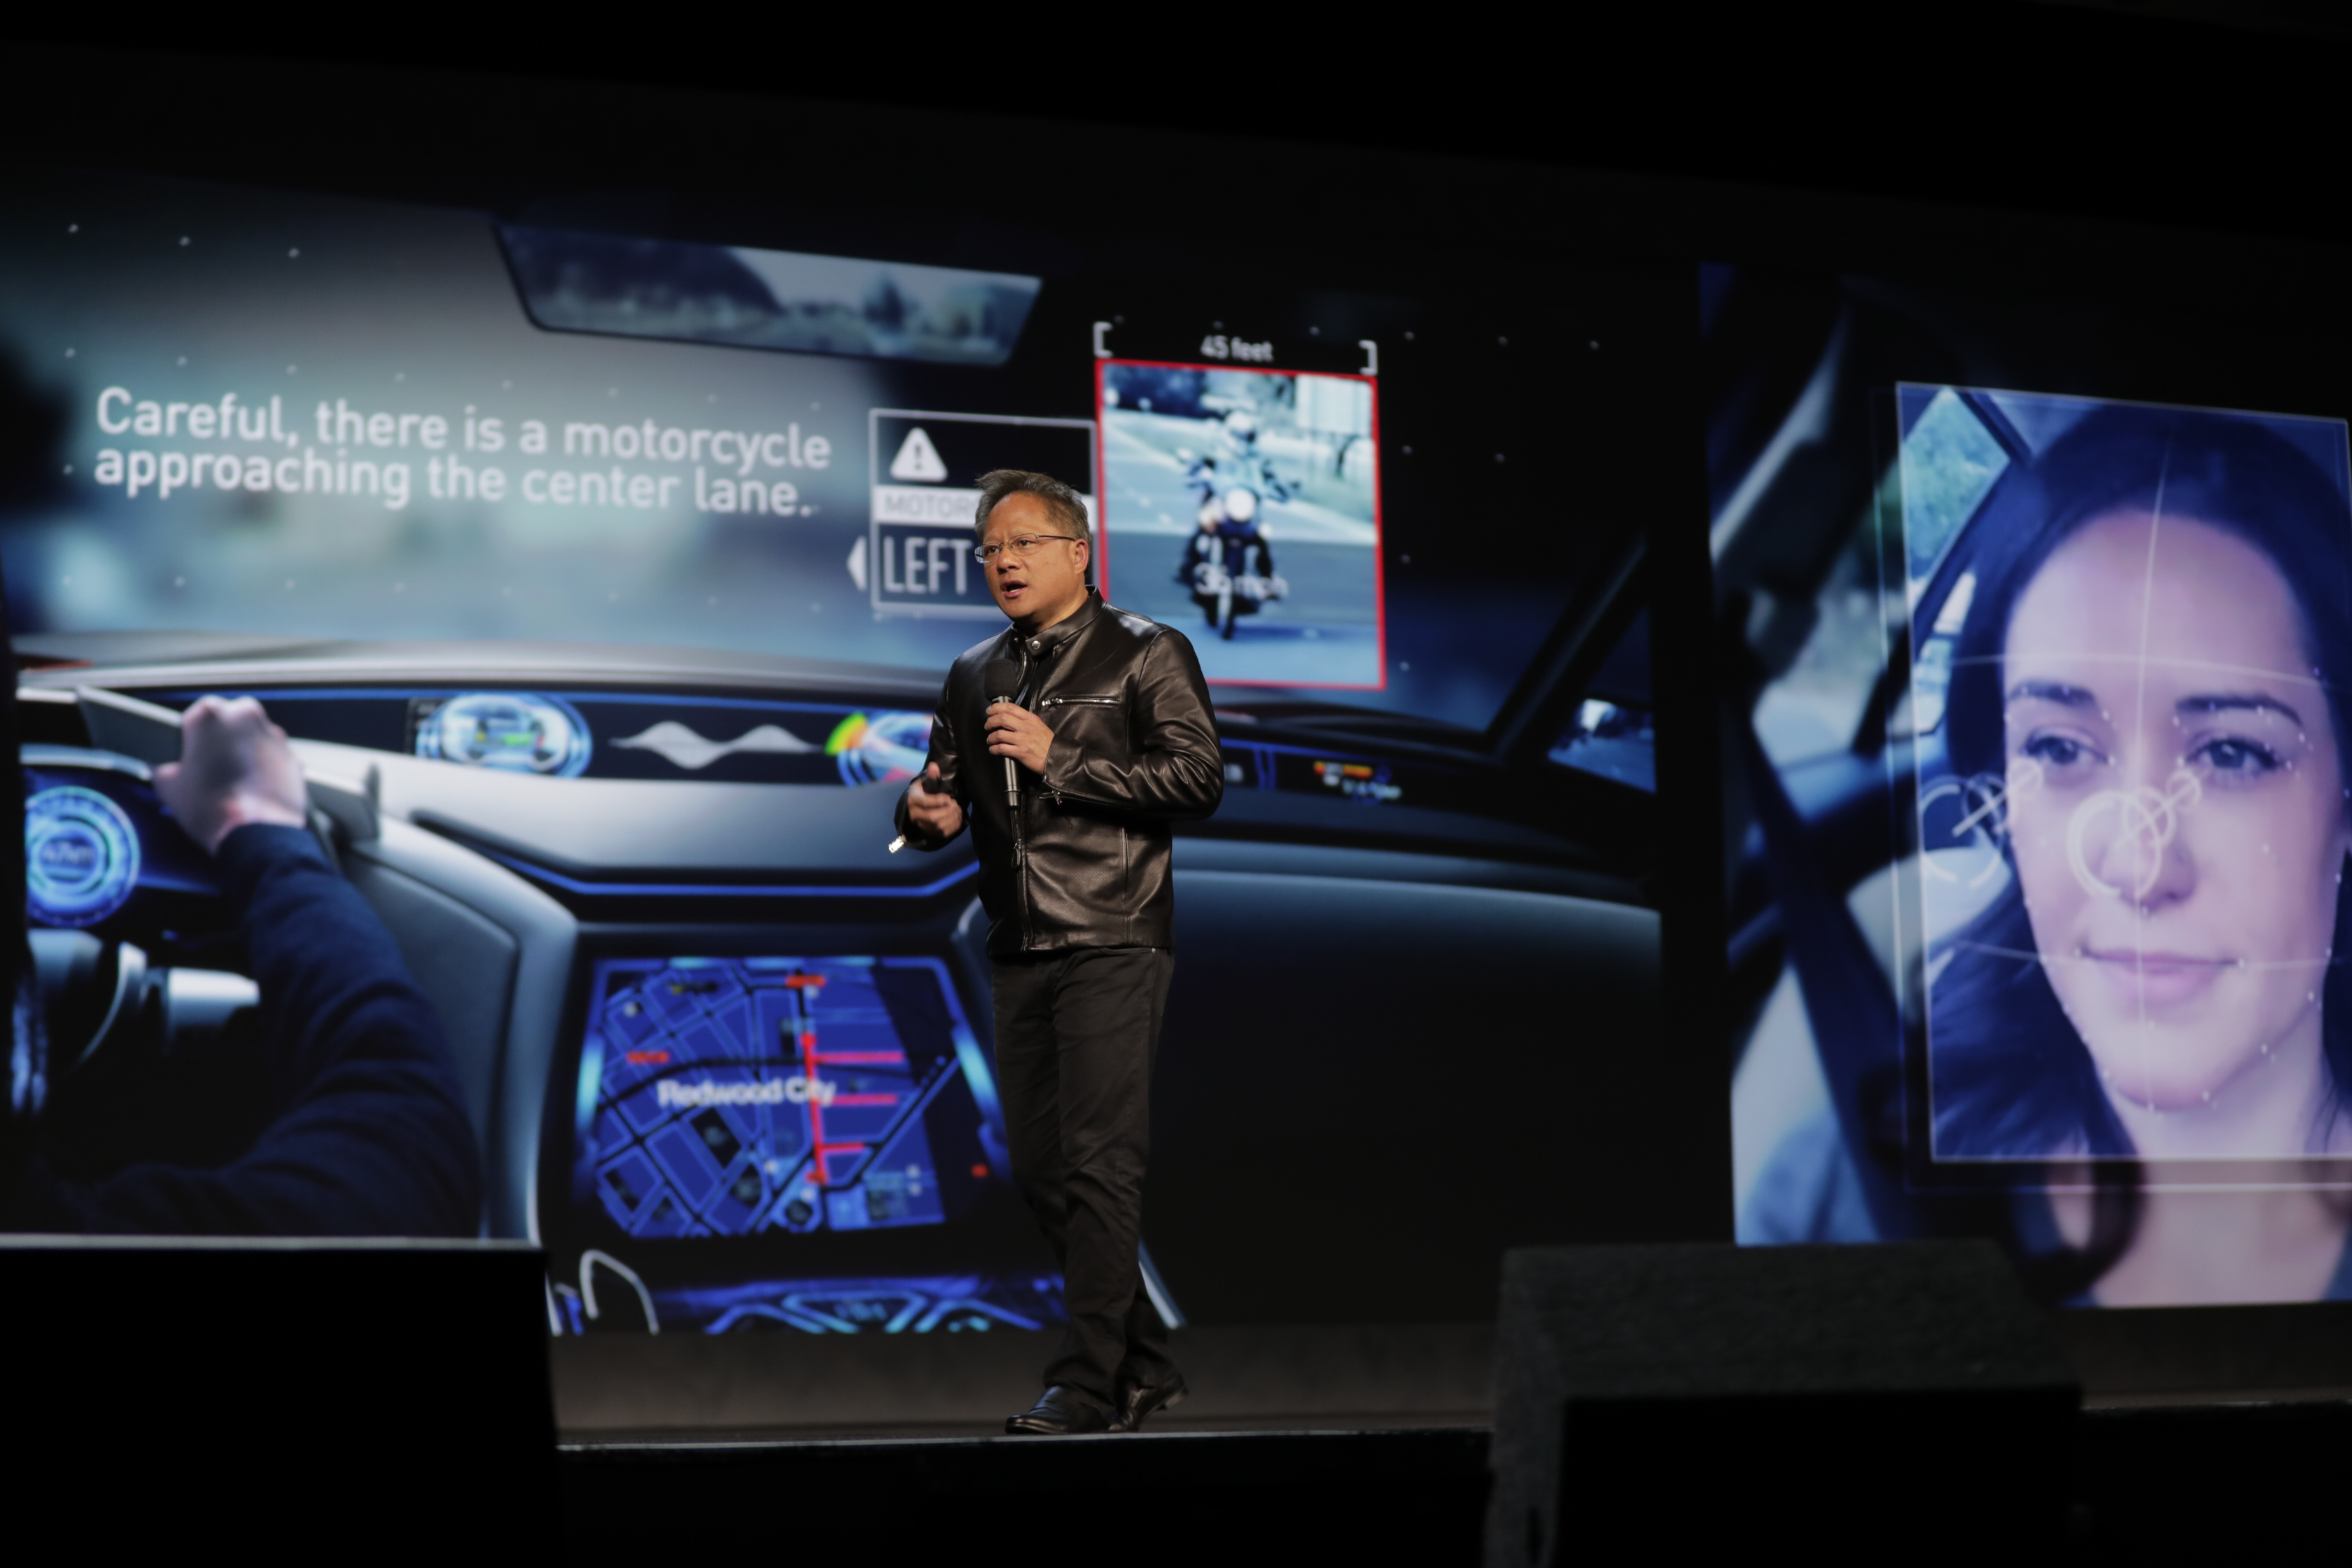 nvidia ai co-pilot inteligenta artificiala